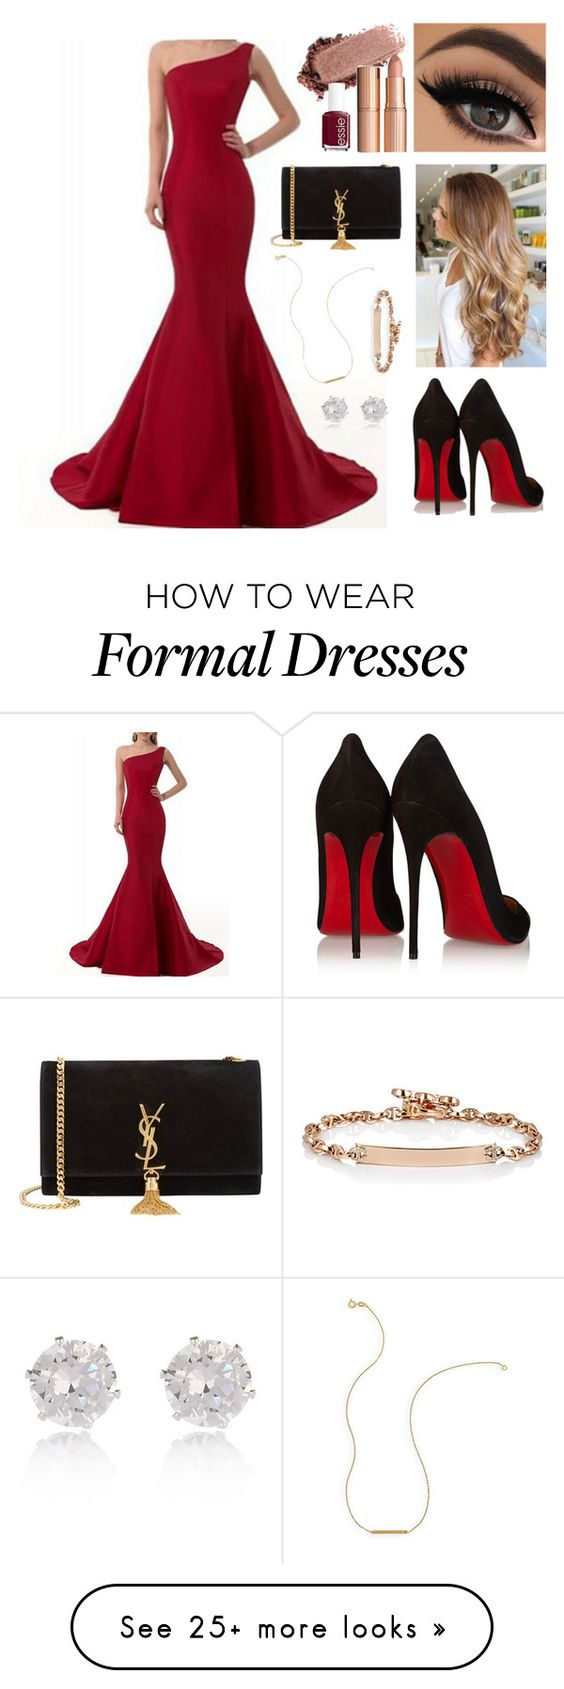 """""""Red Formal"""" by kingvoo on Polyvore featuring Christian Louboutin, Essie, Yves Saint Laurent, River Island, Wish by Amanda Rose, Hoorsenbuhs and RedCarpet"""